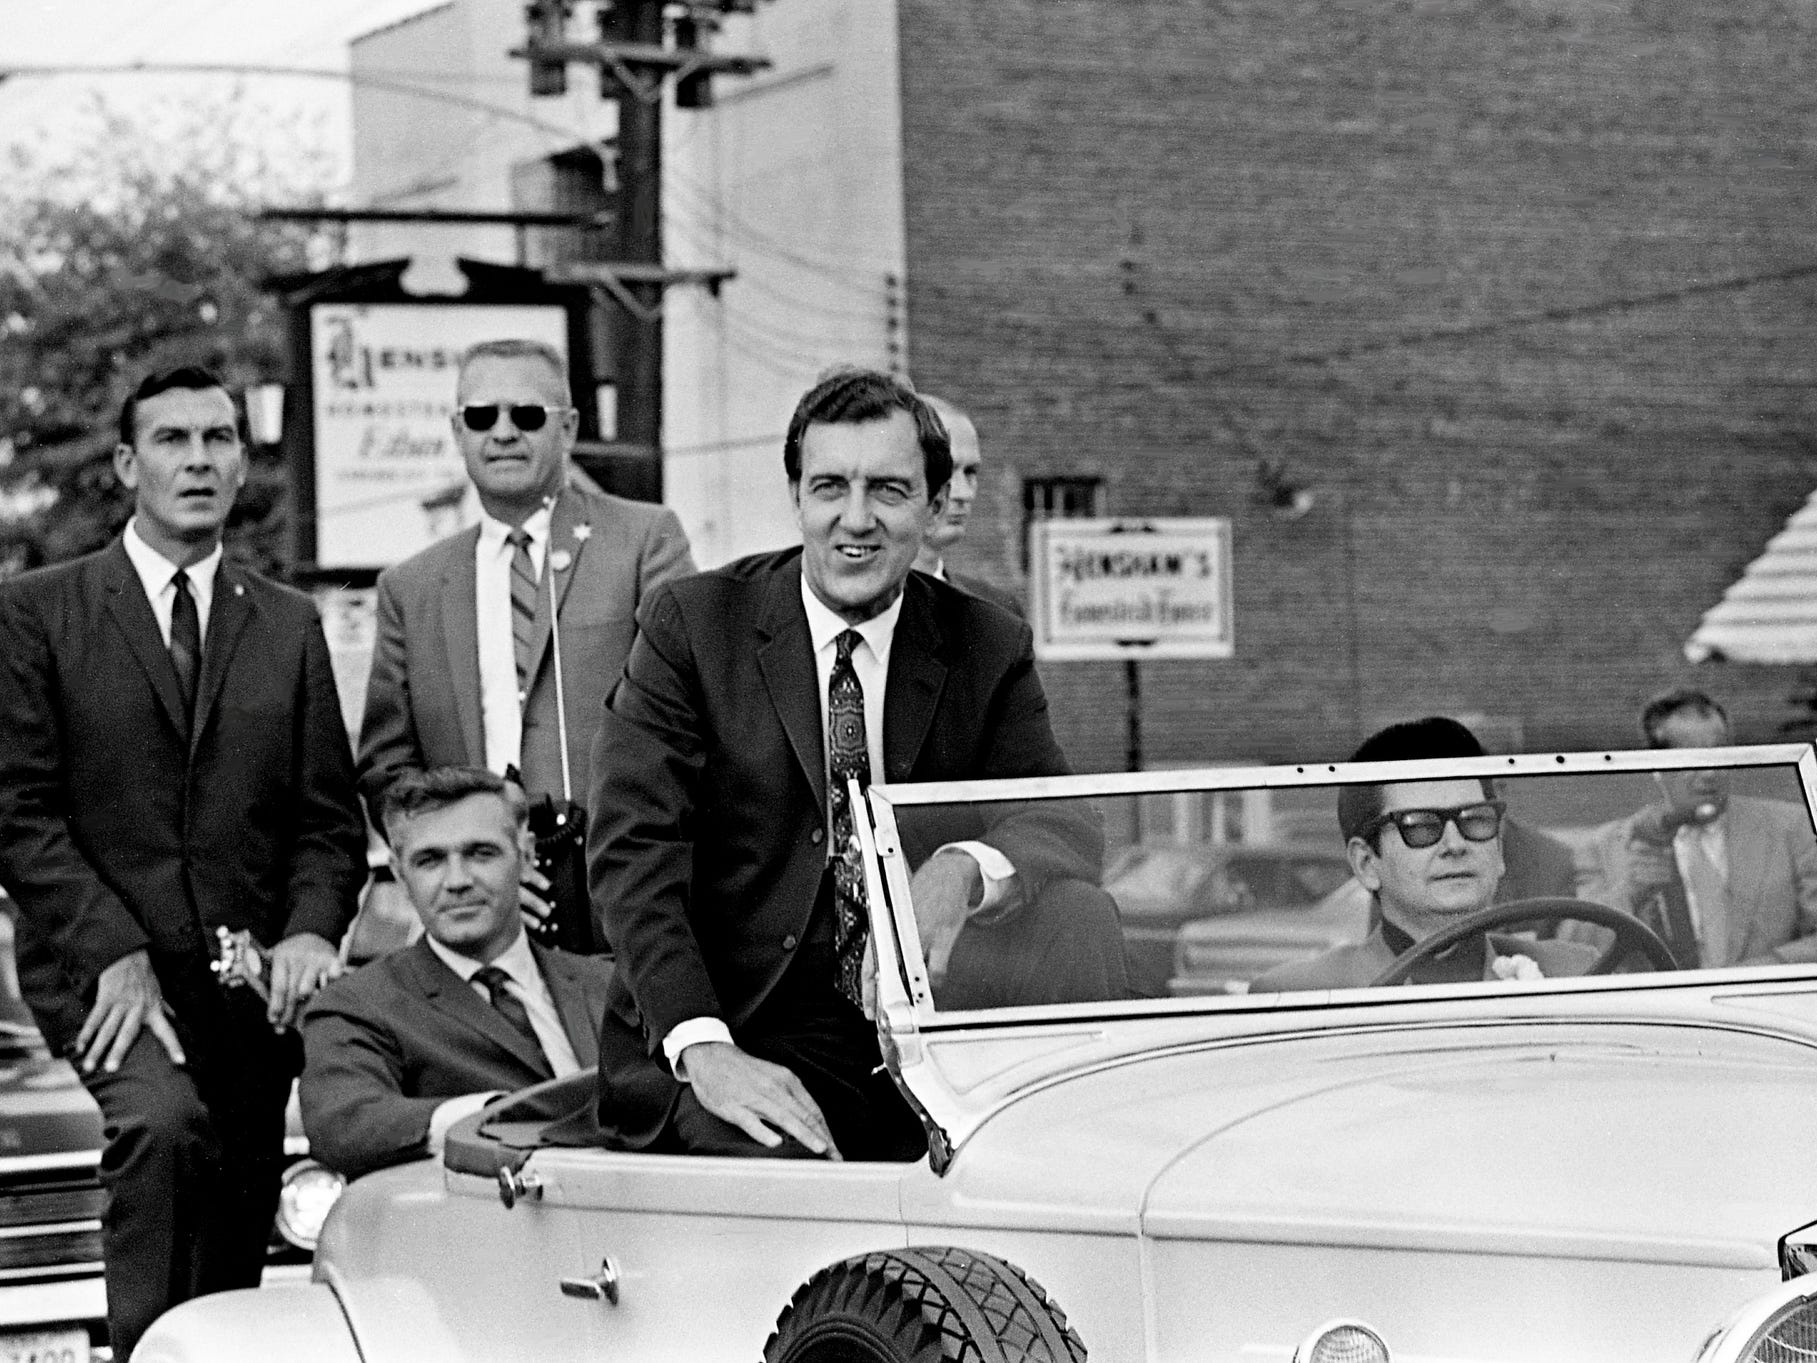 Sen. Edmund Muskie, front left, the Democratic vice presidential nominee, rides in the front seat of a 1930 Packard, chauffeured by entertainer Roy Orbison, during the parade of Madison's 16th annual Hillbilly Day celebration Oct. 5, 1968. Riding in the back is Rep. Richard Fulton.